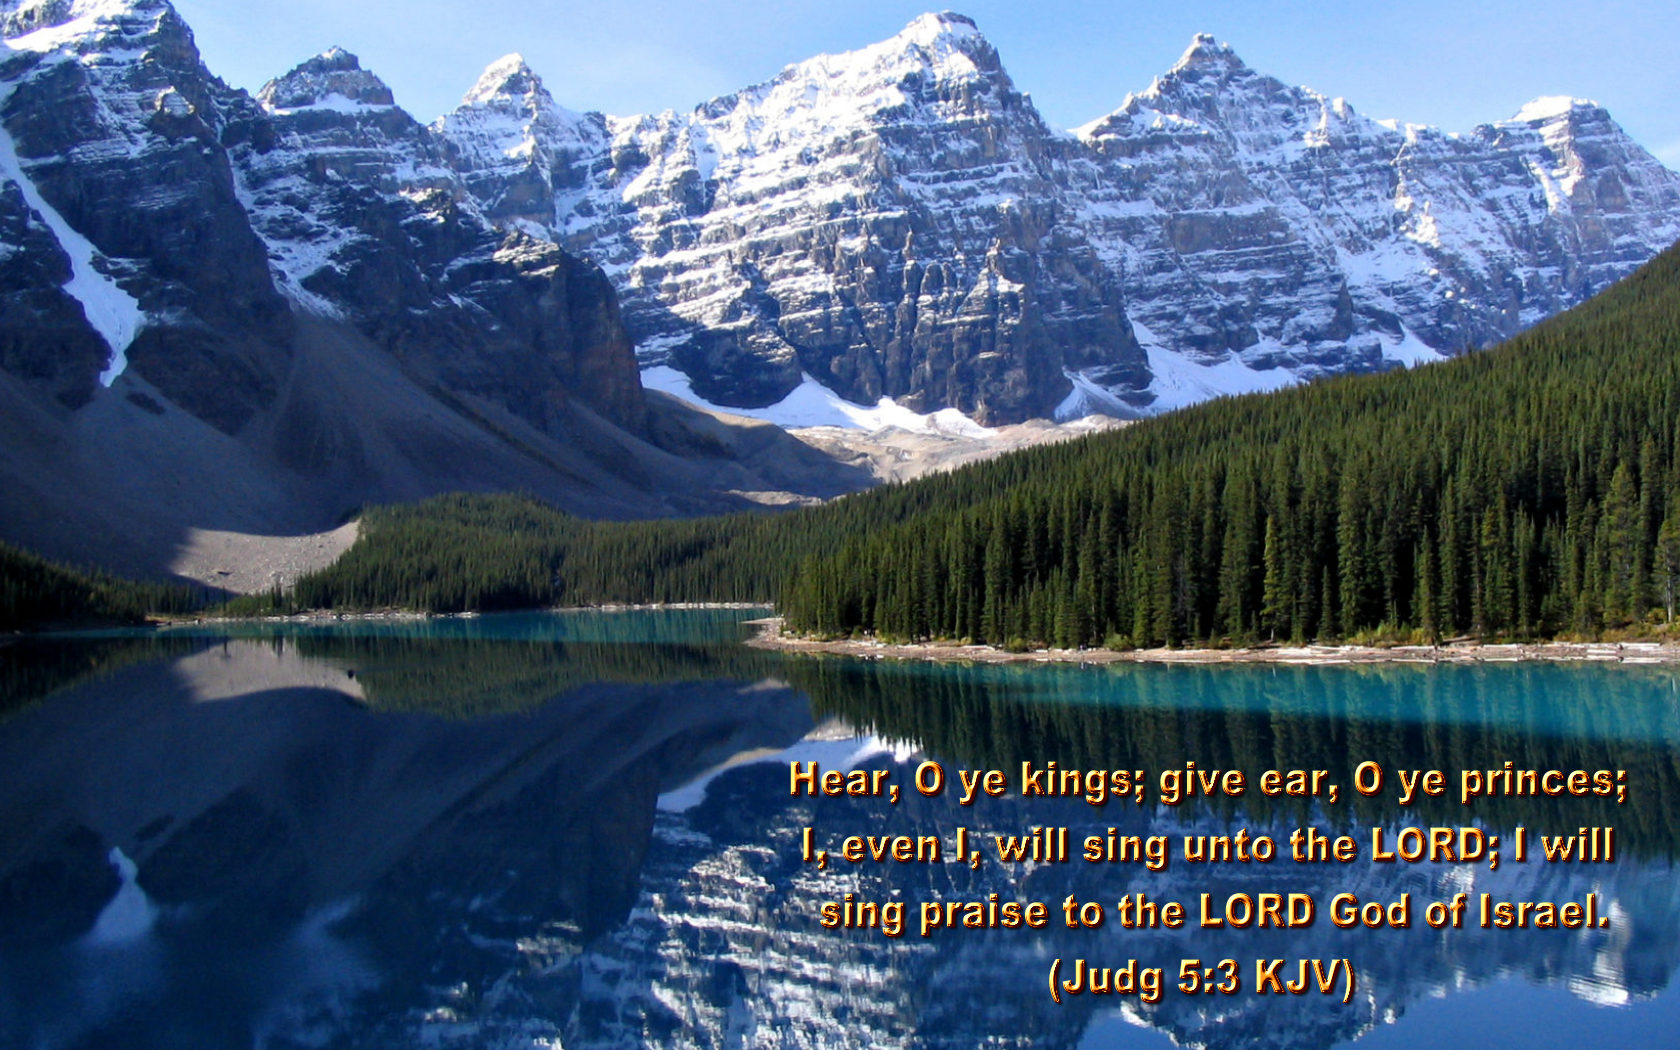 Click on image to see full size Bible verses large wallpaper 1680x1050